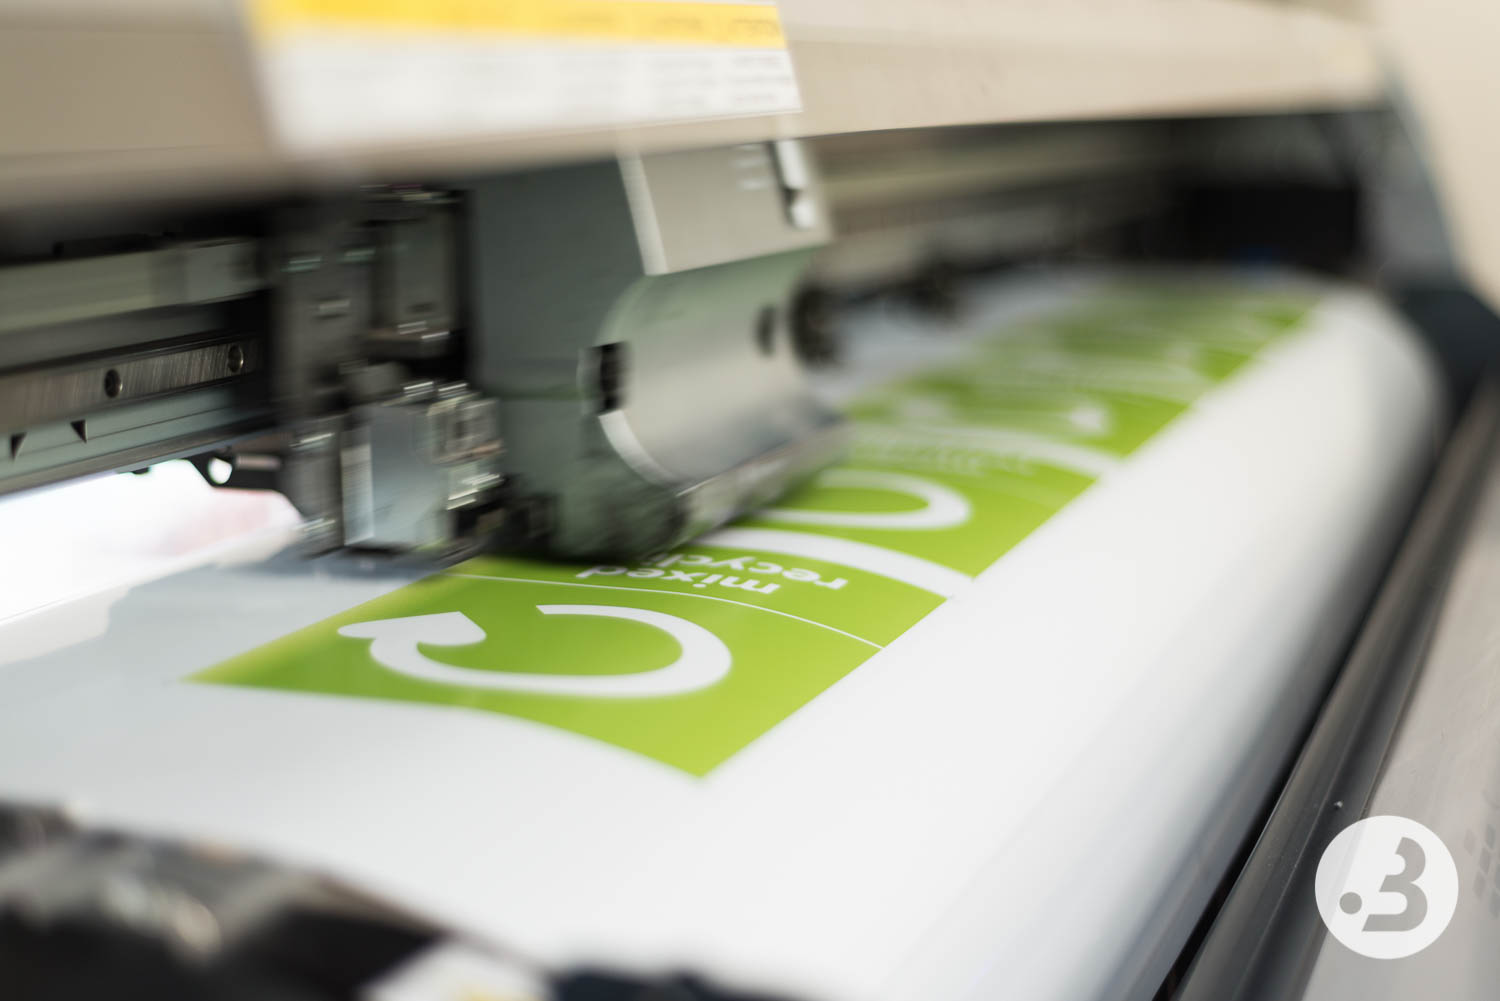 Ian Best - Digital, Lithographic, Copying, Lanyard and Badge Printing and Scanning